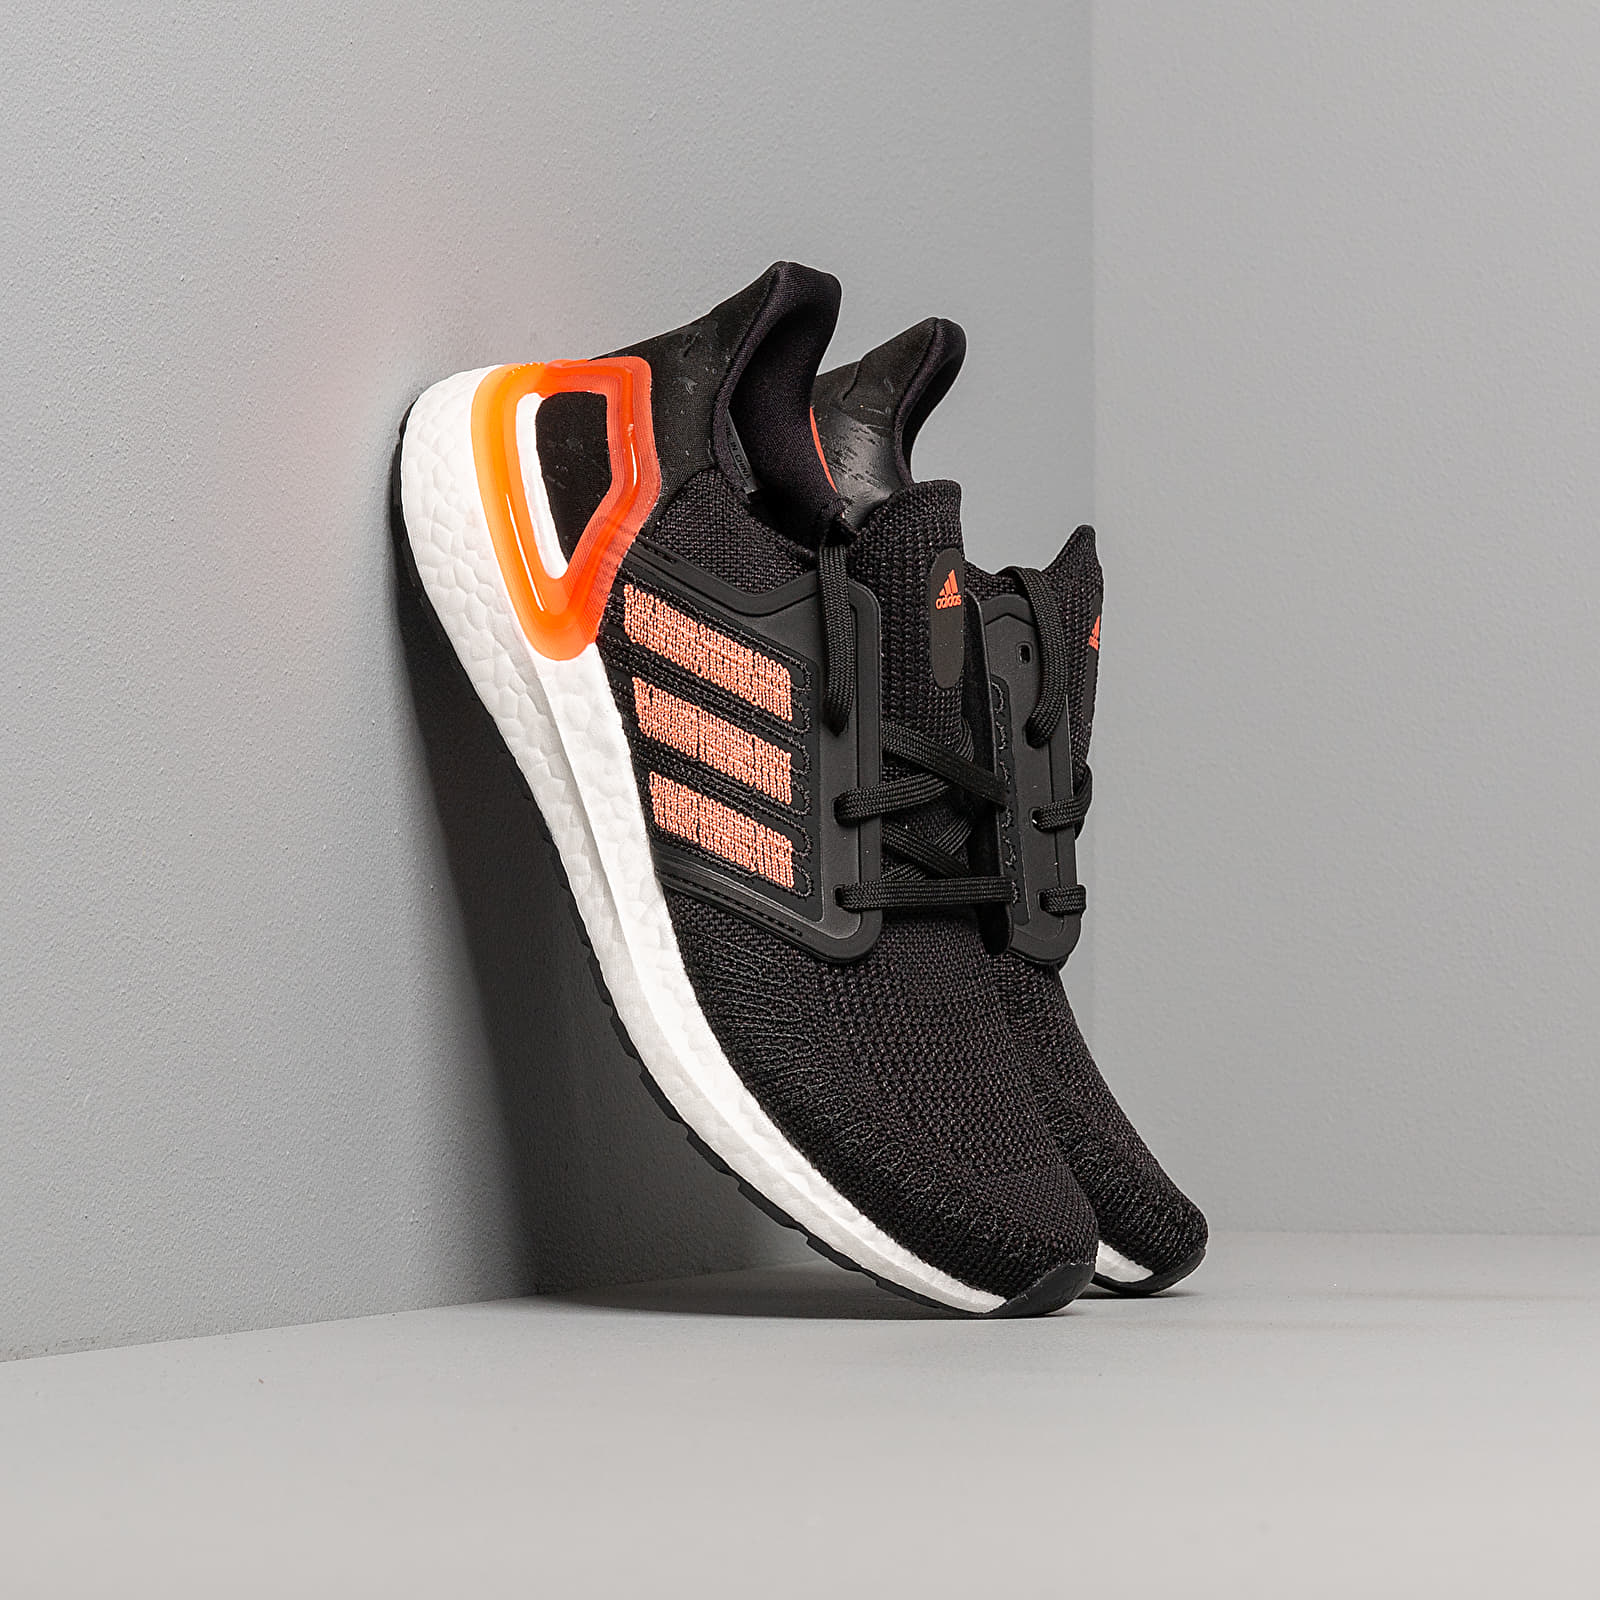 Women's shoes adidas UltraBOOST 20 W Core Black/ Signature Coral/ Ftw White